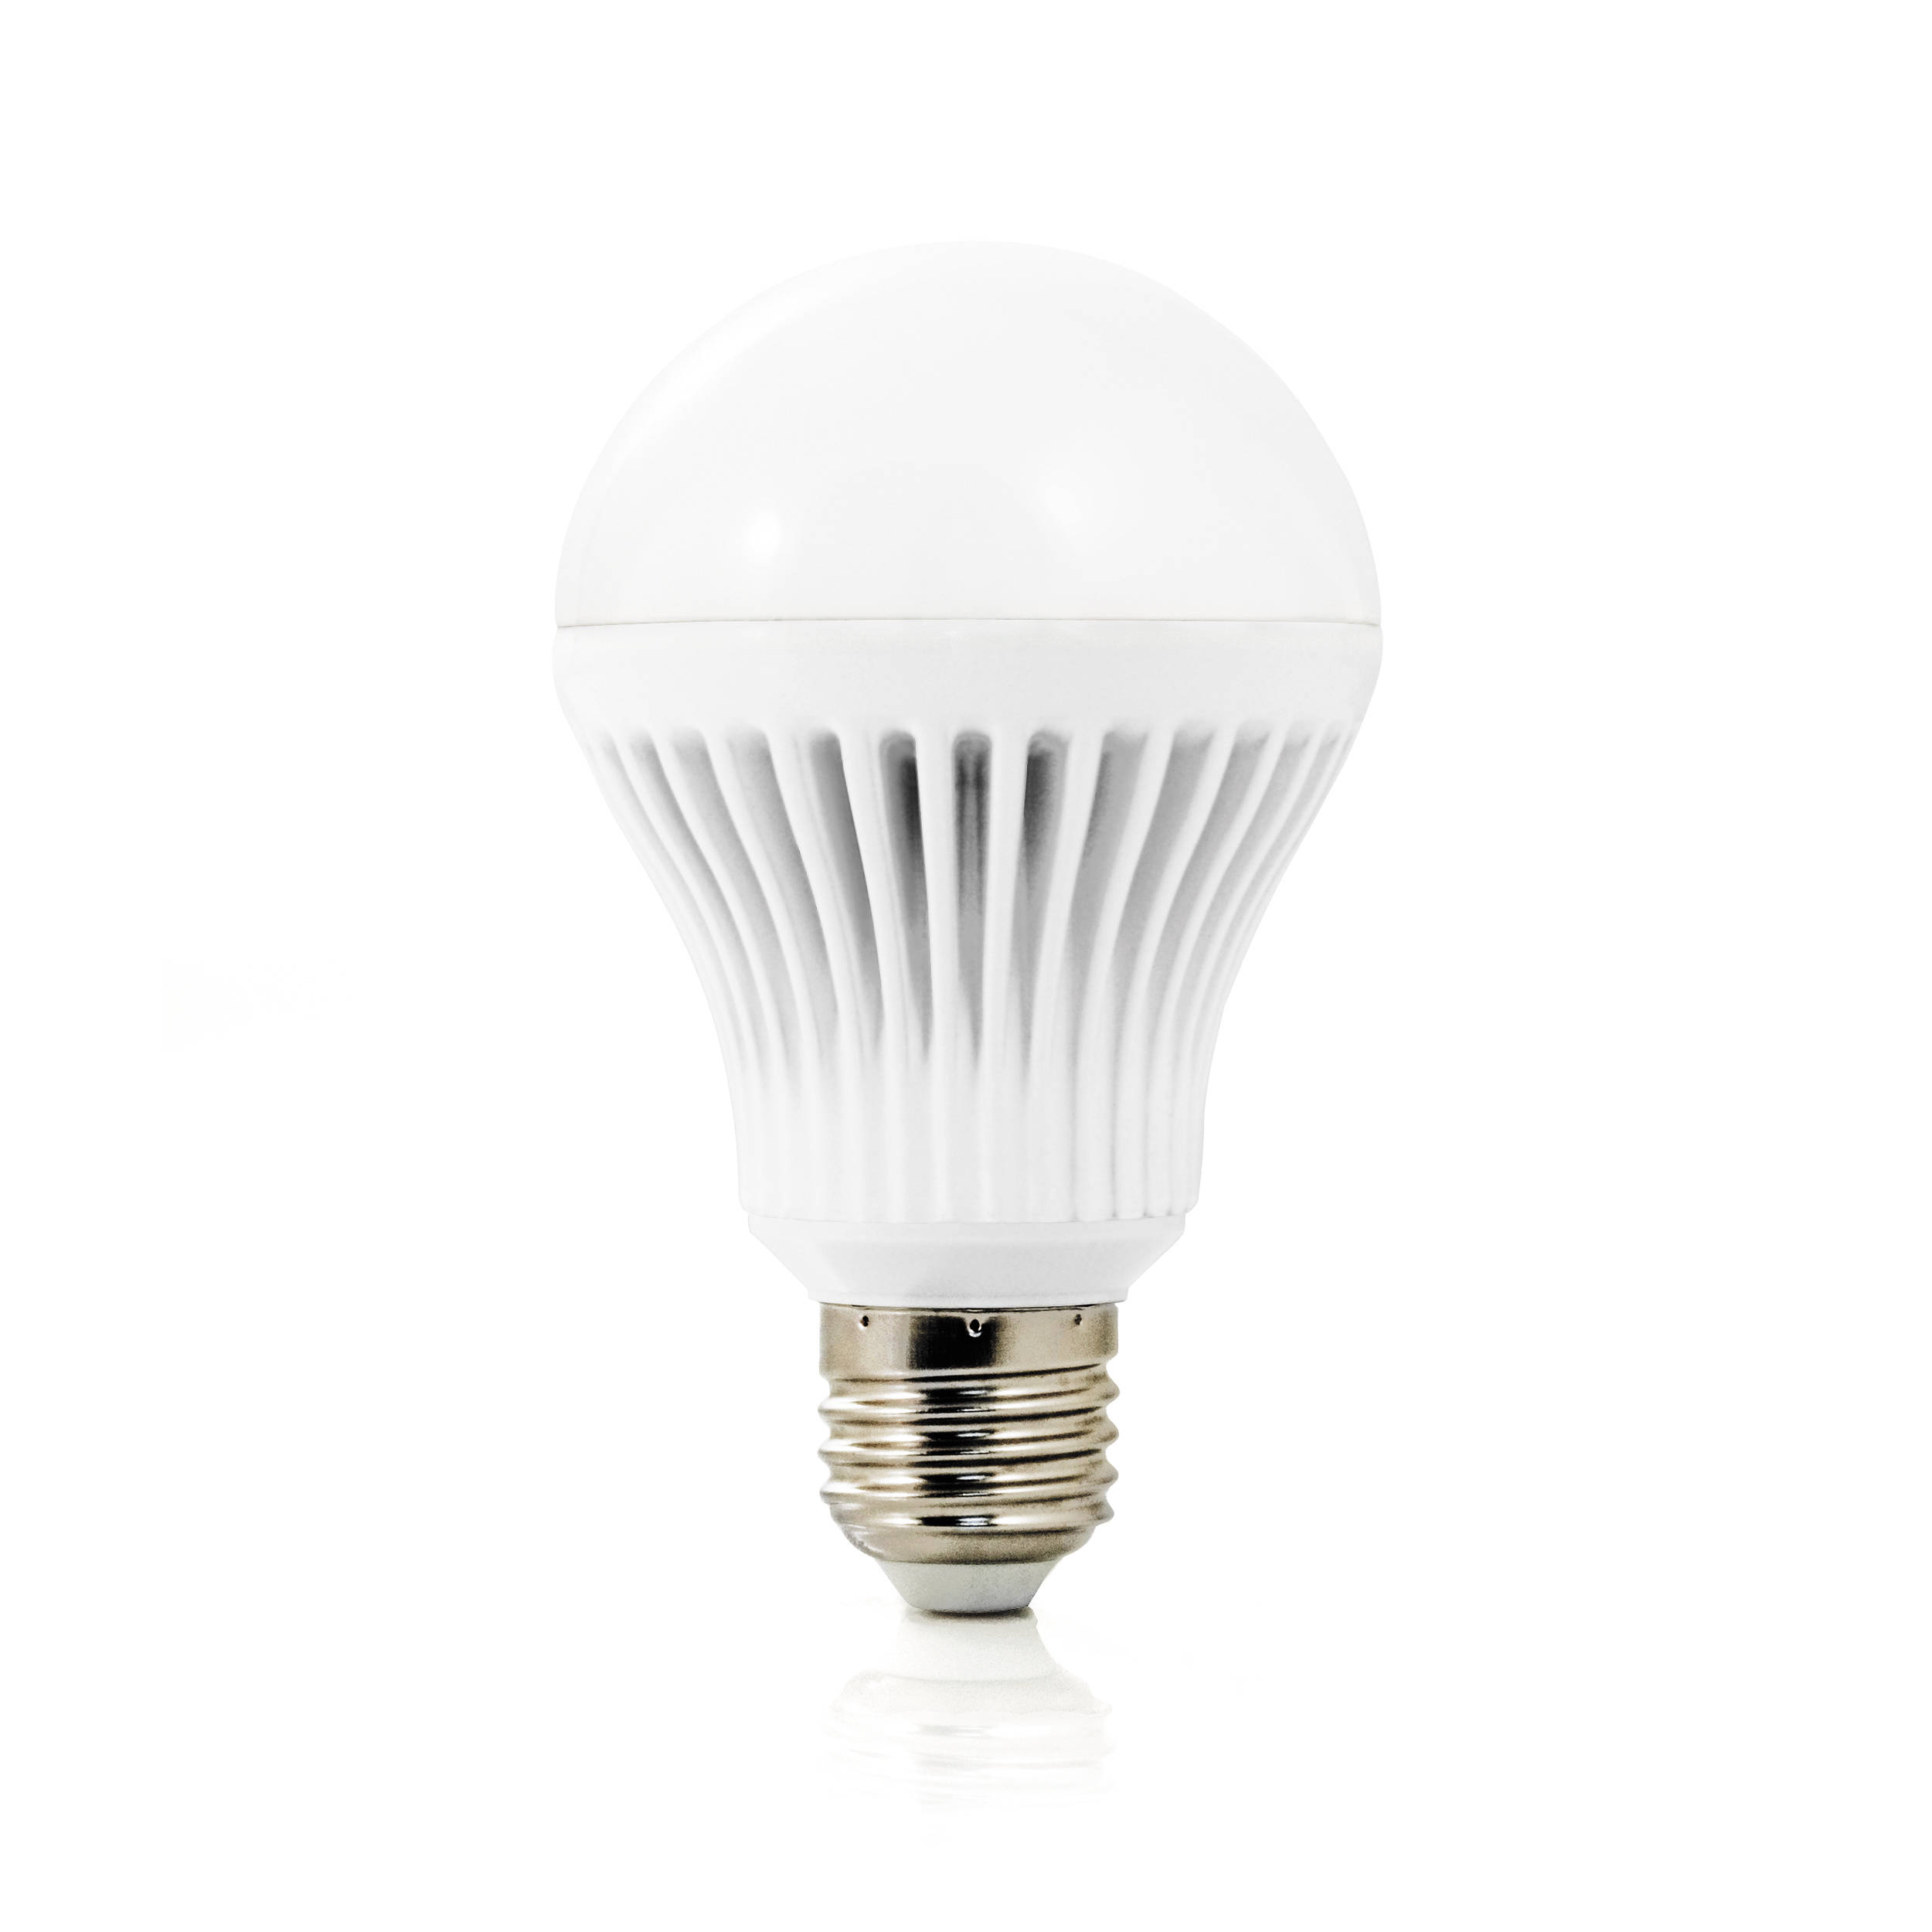 INSTEON Dimmable LED Bulb  sc 1 st  Bu0026H & INSTEON Dimmable LED Bulb 2672-292 Bu0026H Photo Video azcodes.com